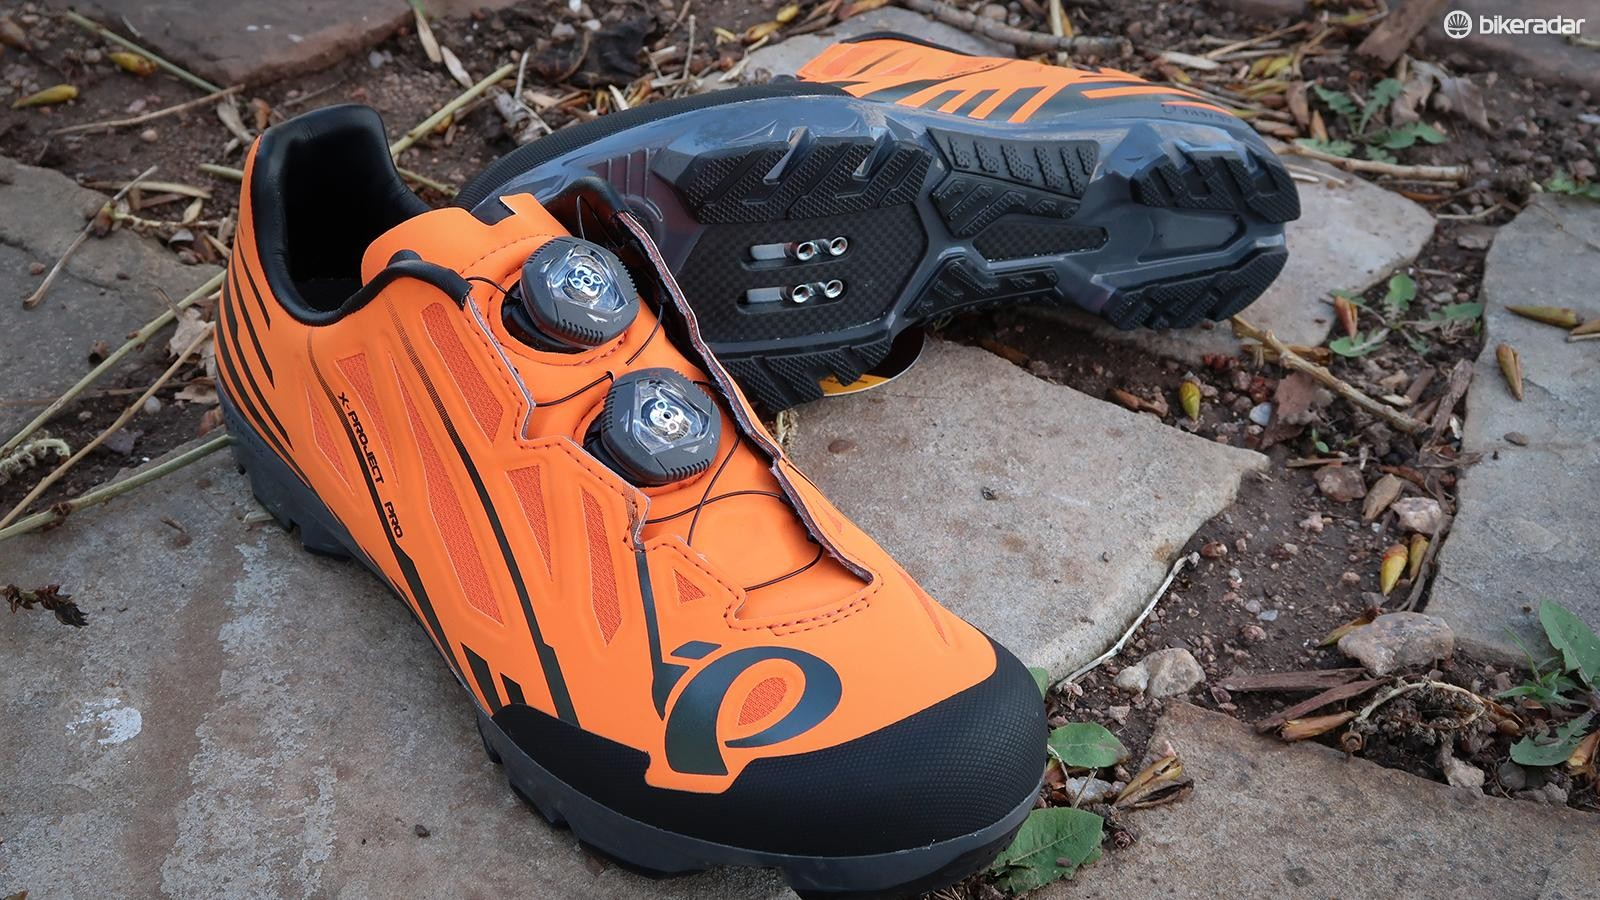 Pearl Izumi's X-Project Pro is the company's top end mountain and cyclocross shoe